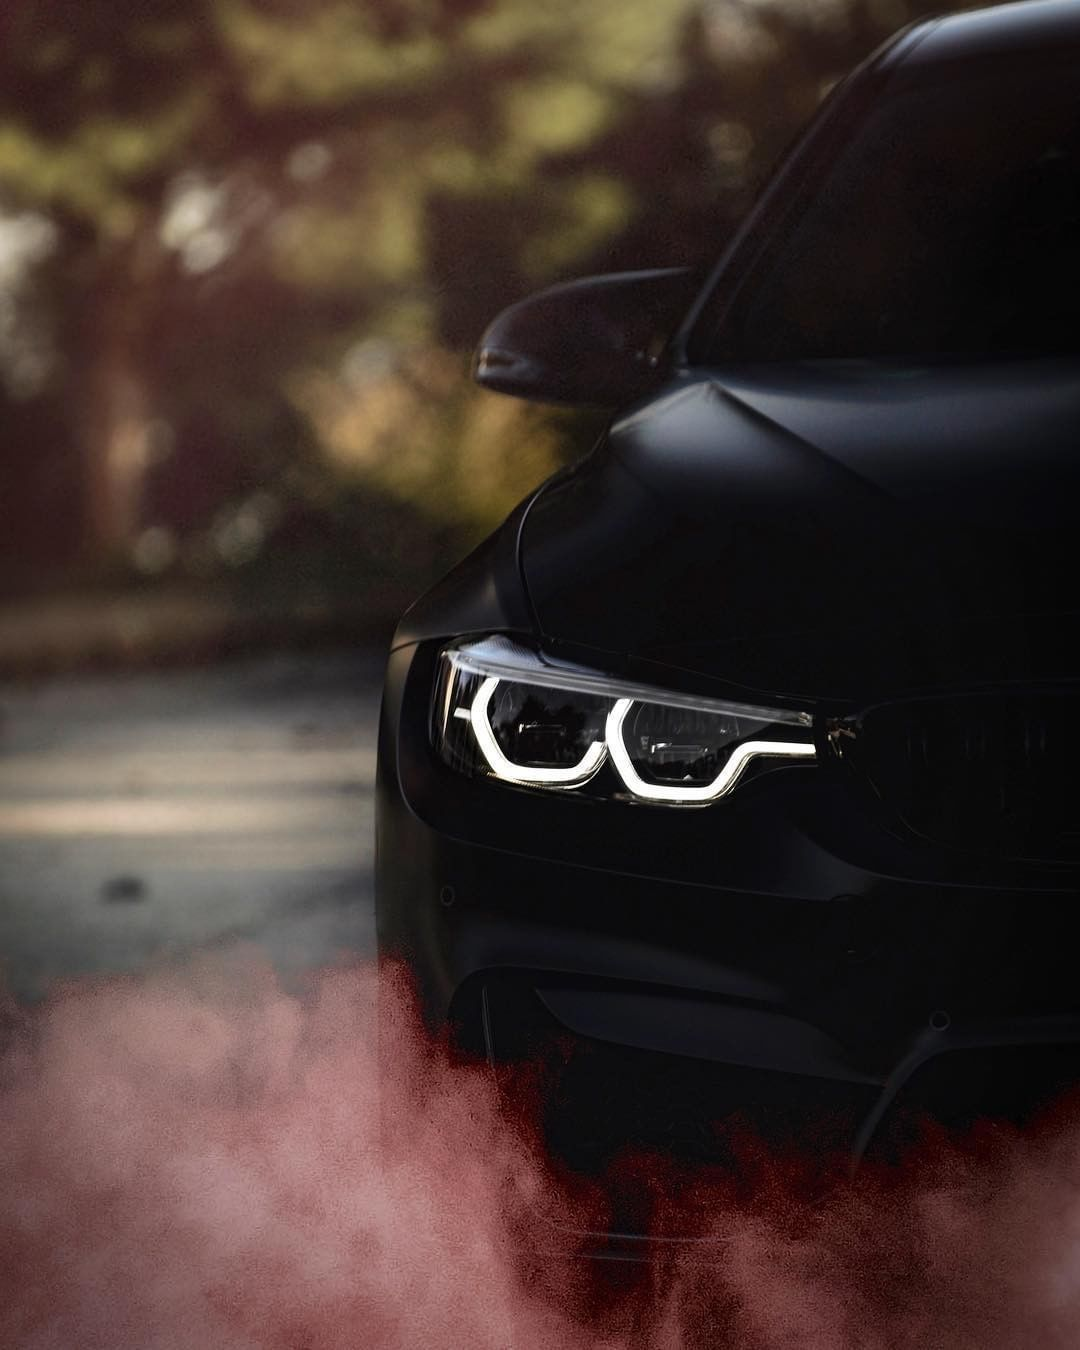 Dark Bmw Wallpapers Top Free Dark Bmw Backgrounds Wallpaperaccess